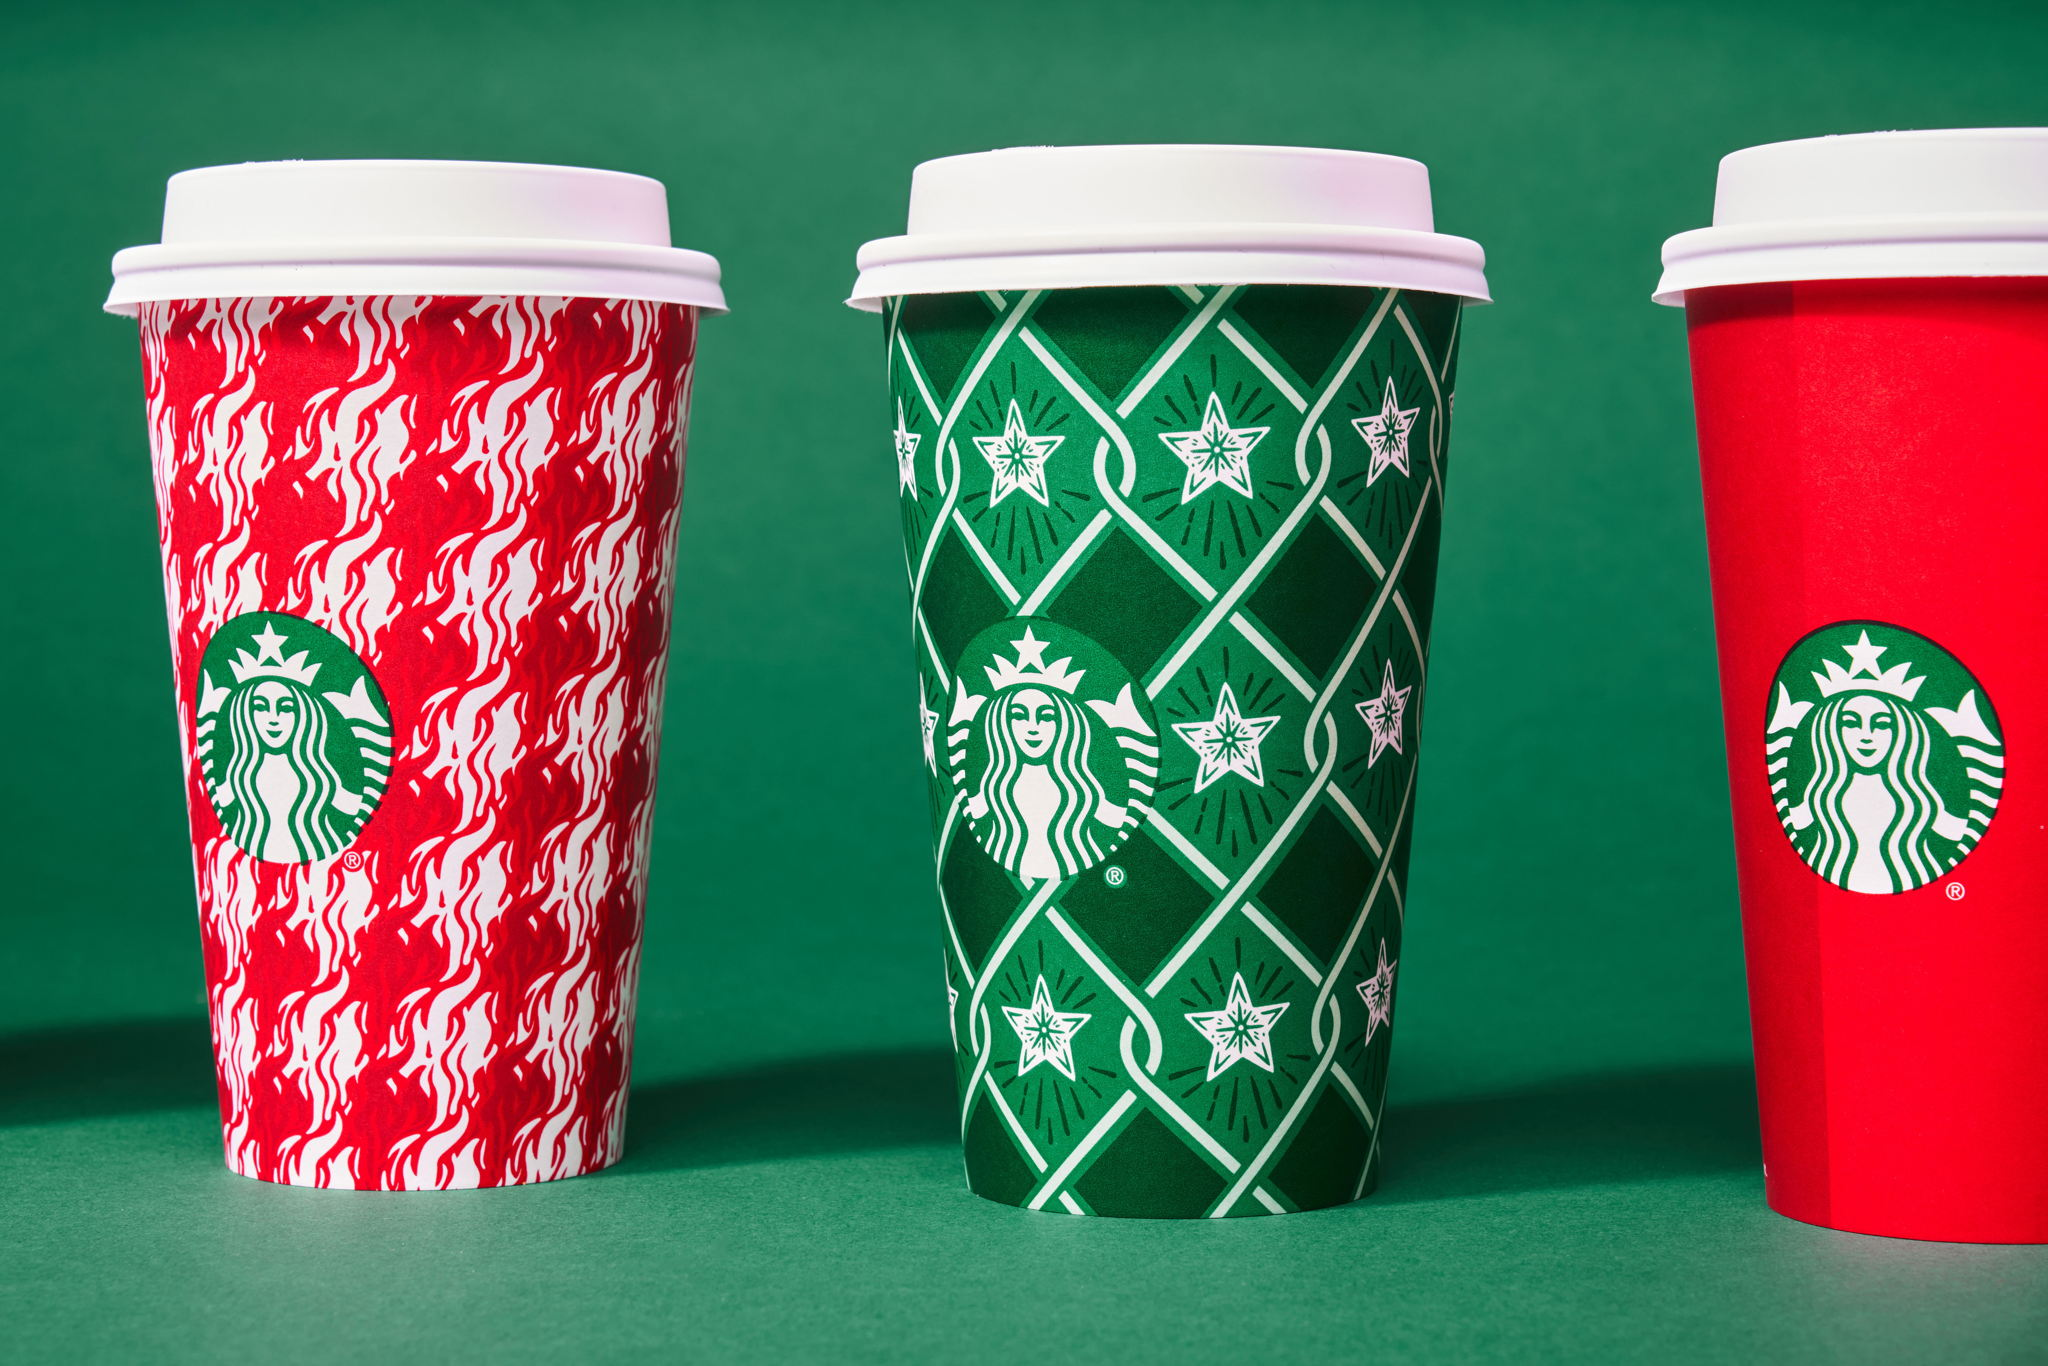 The_Dieline_Starbucks_Holiday-JStrutz-103018-0095_1.jpg